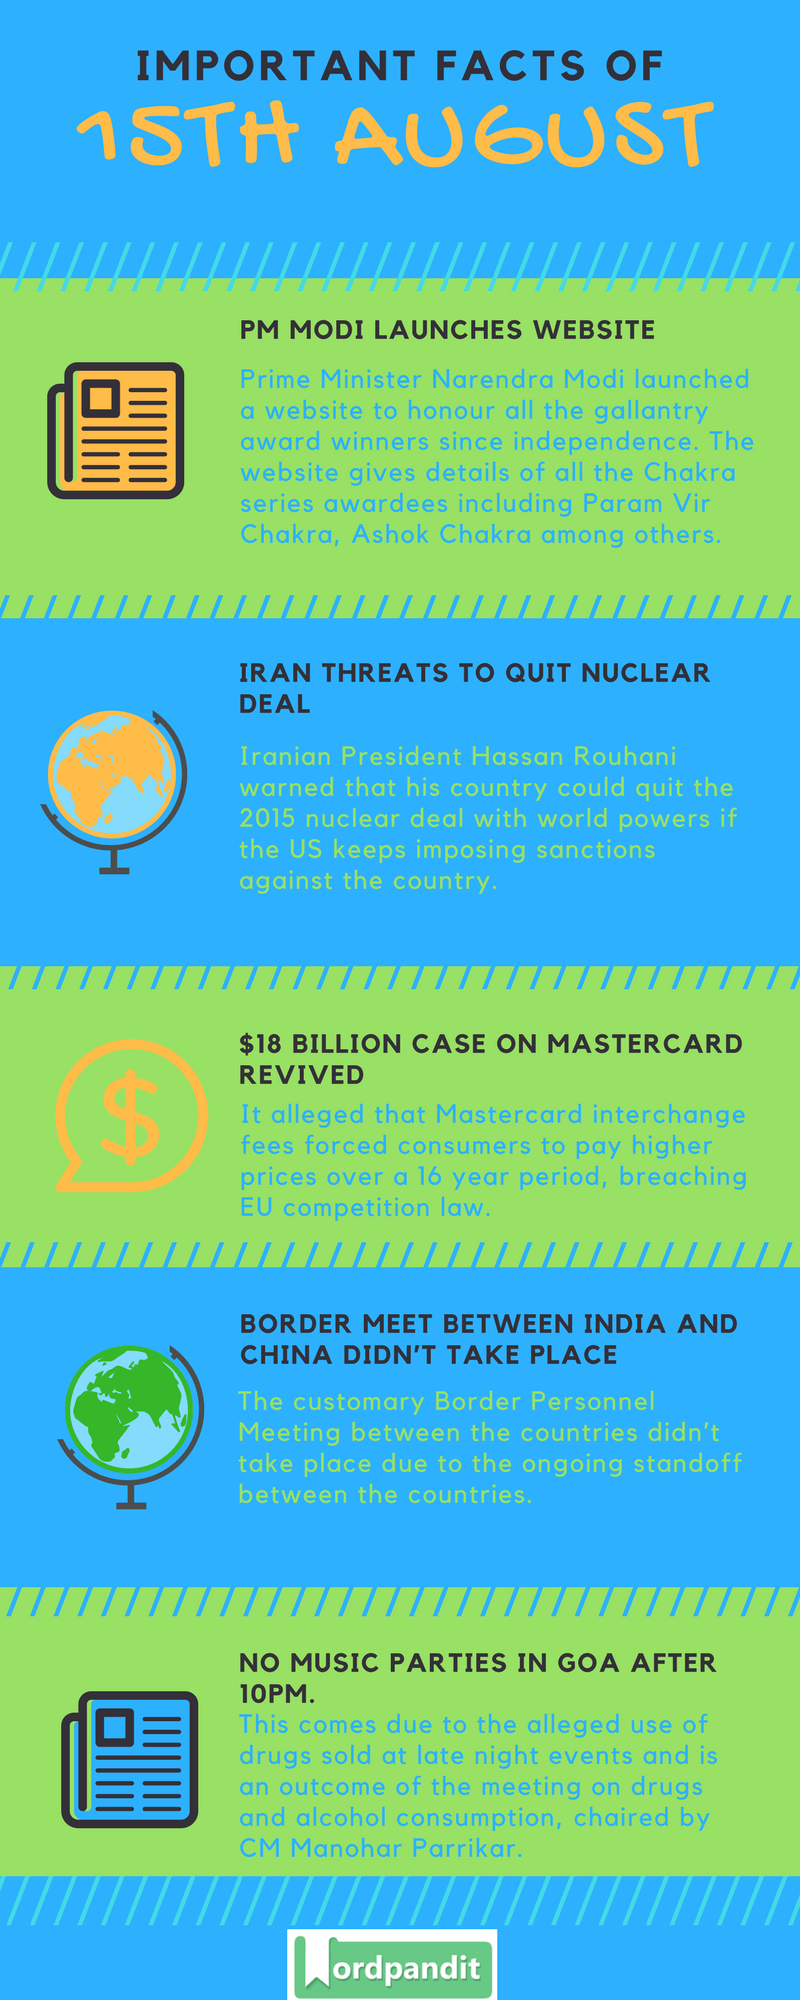 Daily-Current-Affairs-15-august-2017-Current-Affairs-Quiz-august-15-2017-Current-Affairs-Infographic